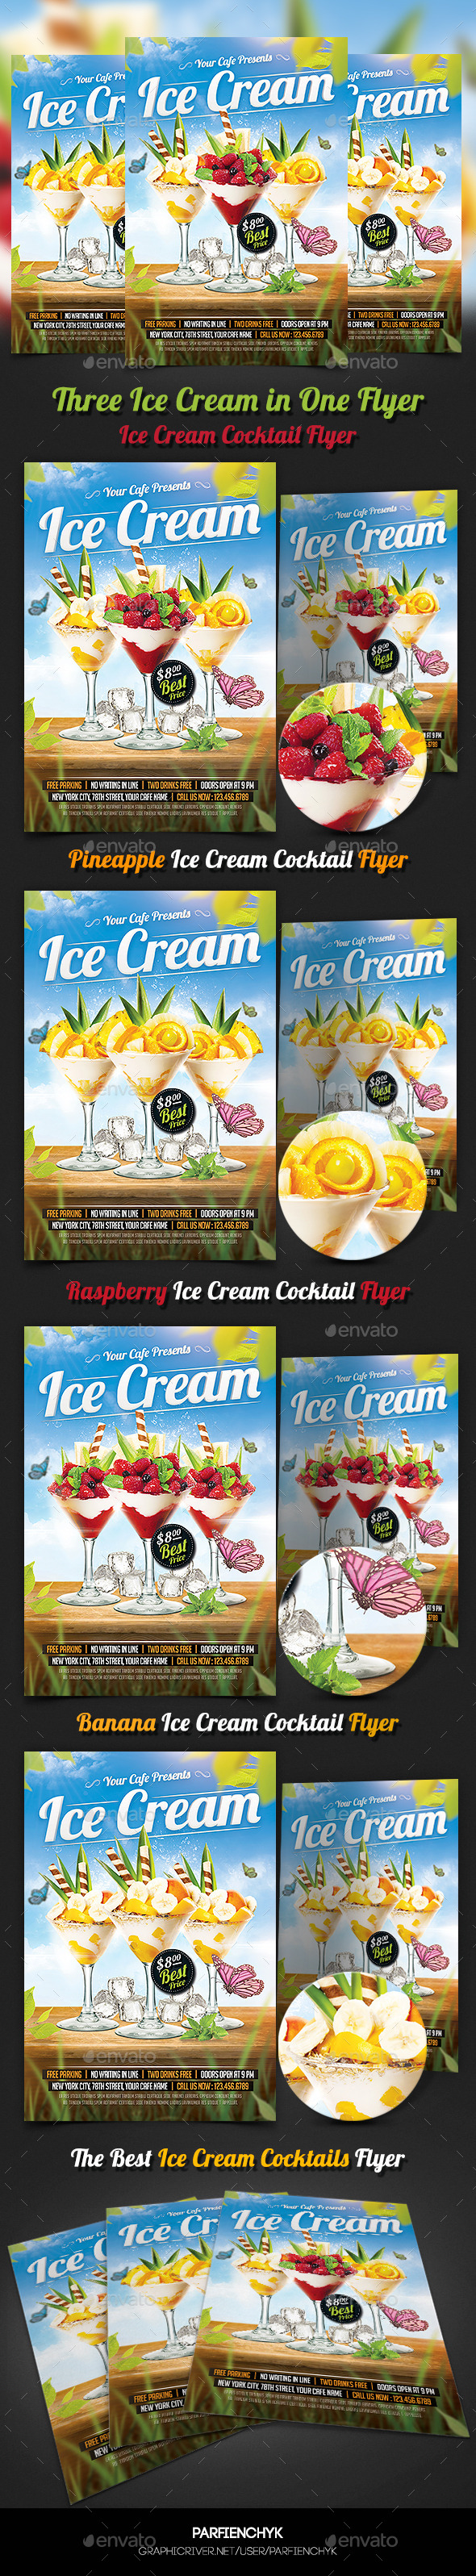 Ice Cream Cocktails Party Flyer Template - Clubs & Parties Events